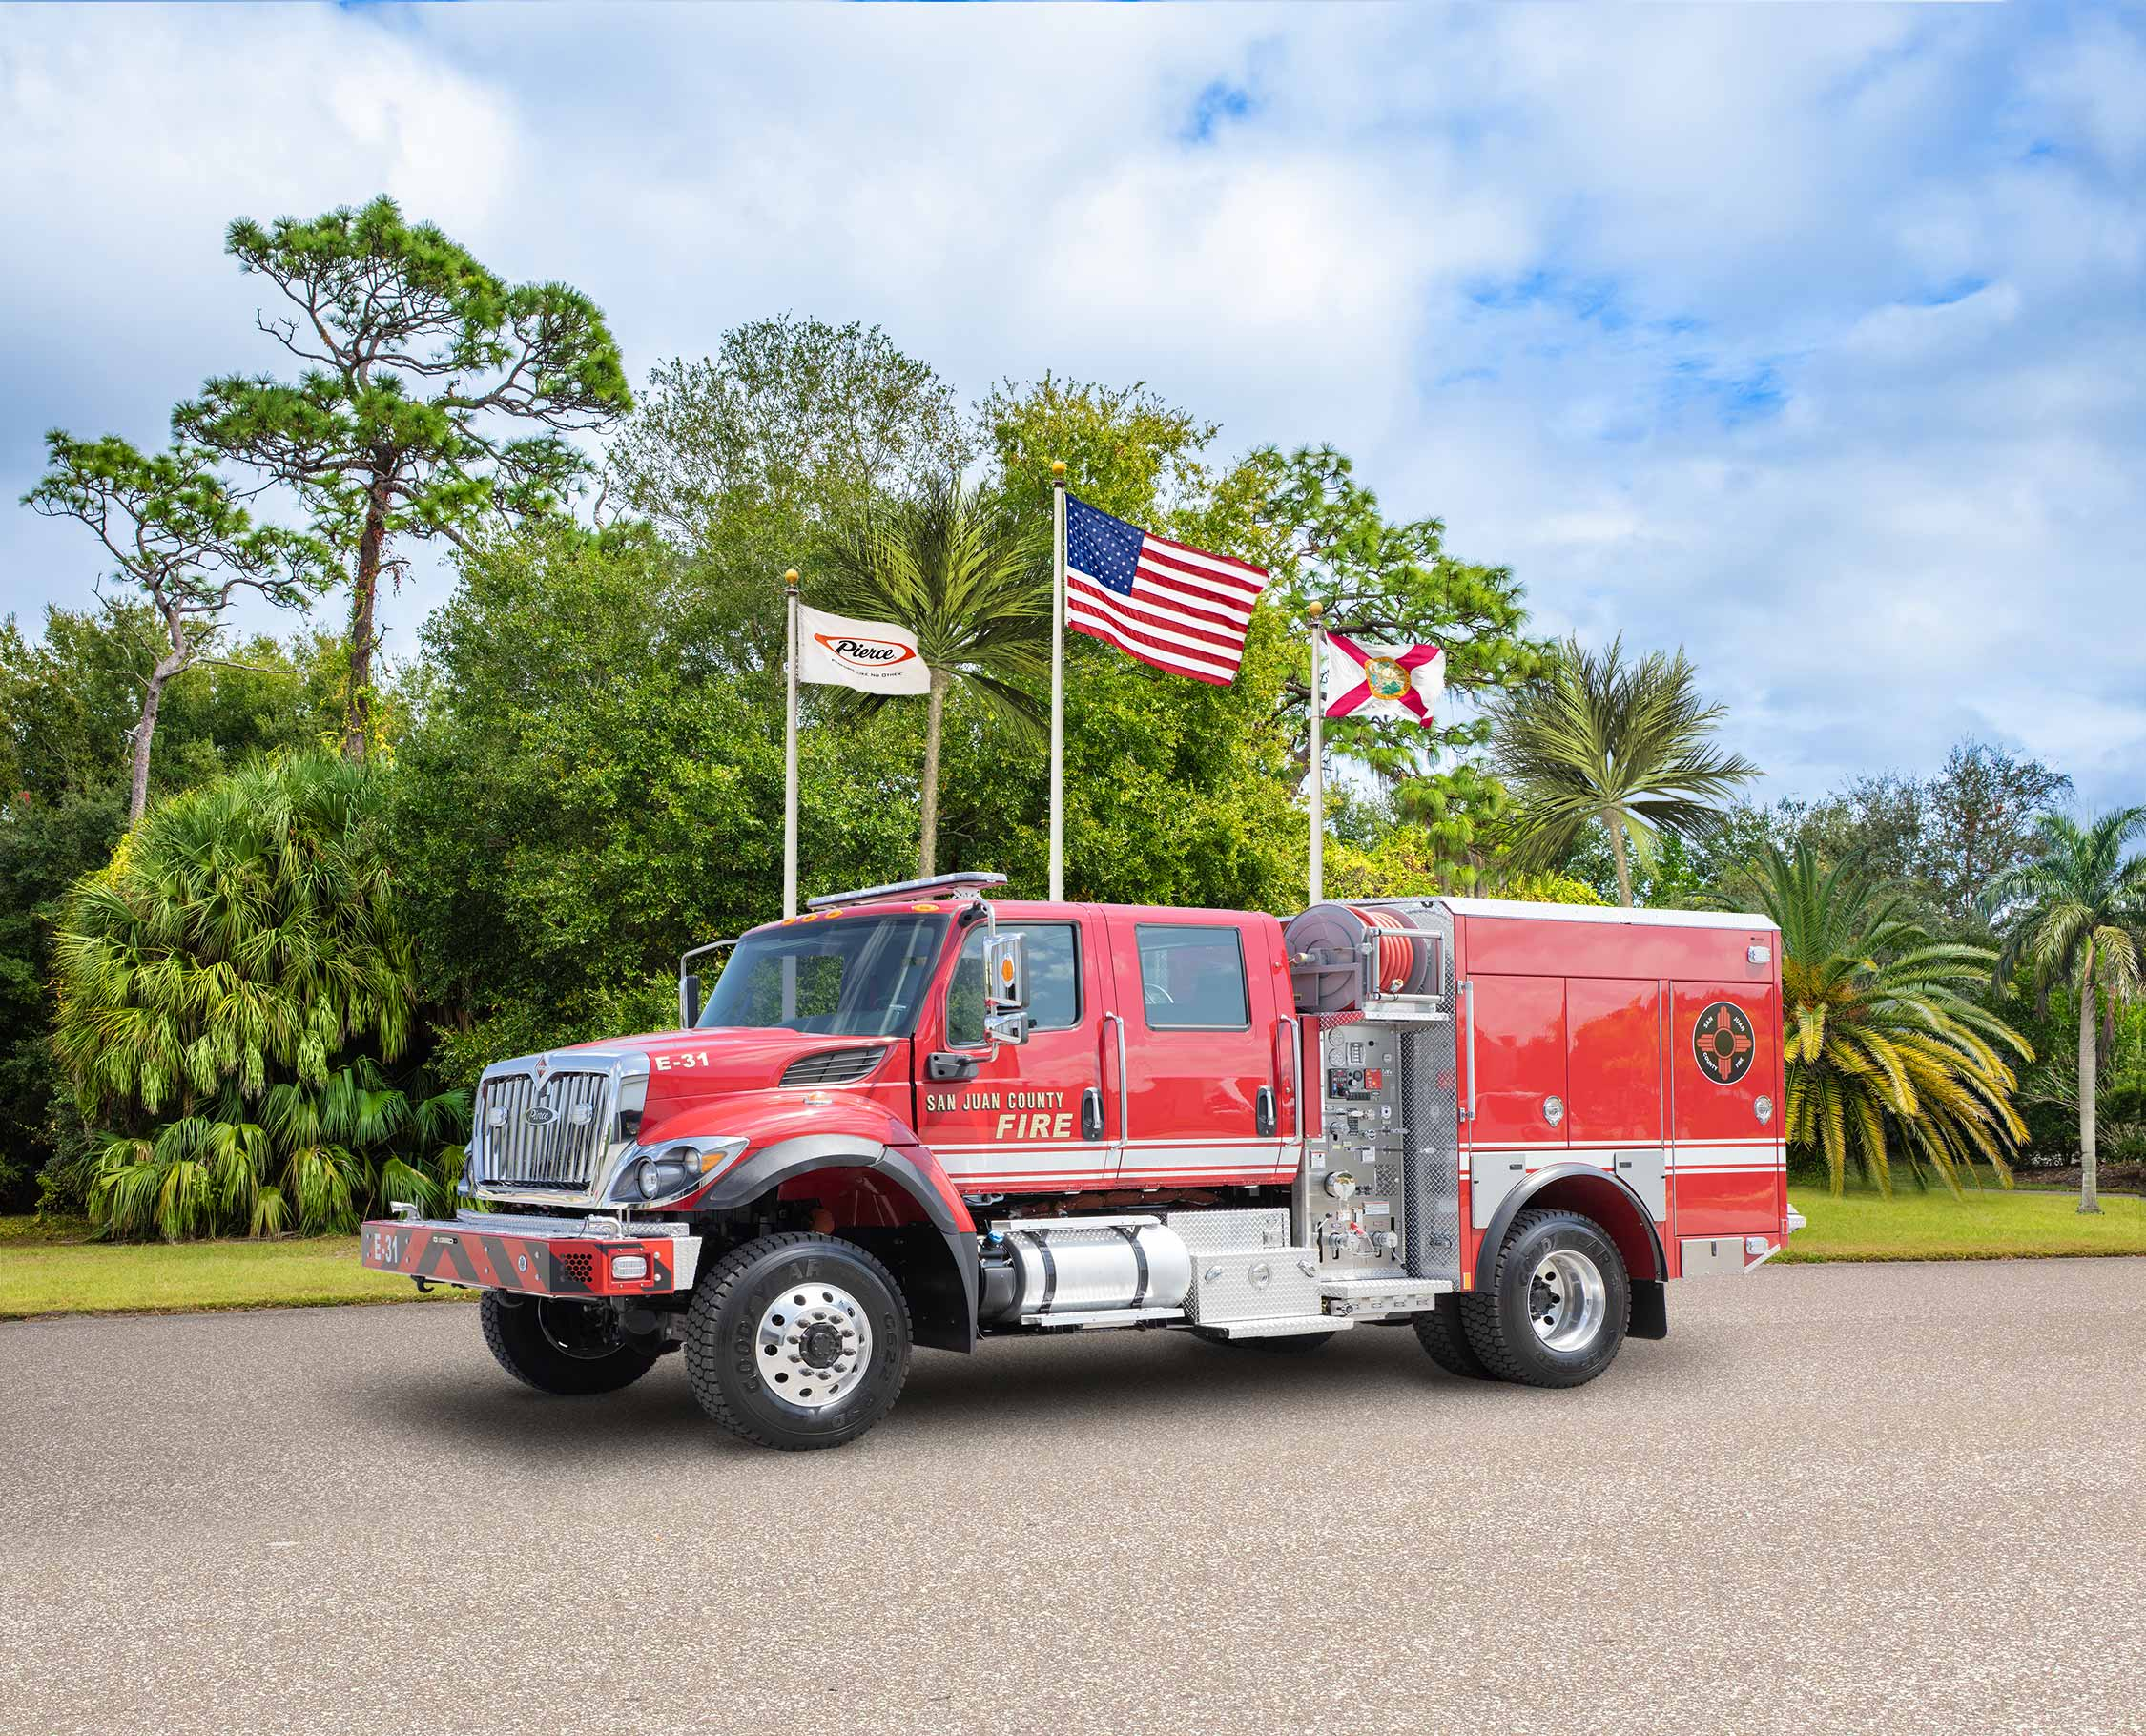 San Juan County Fire - Pumper